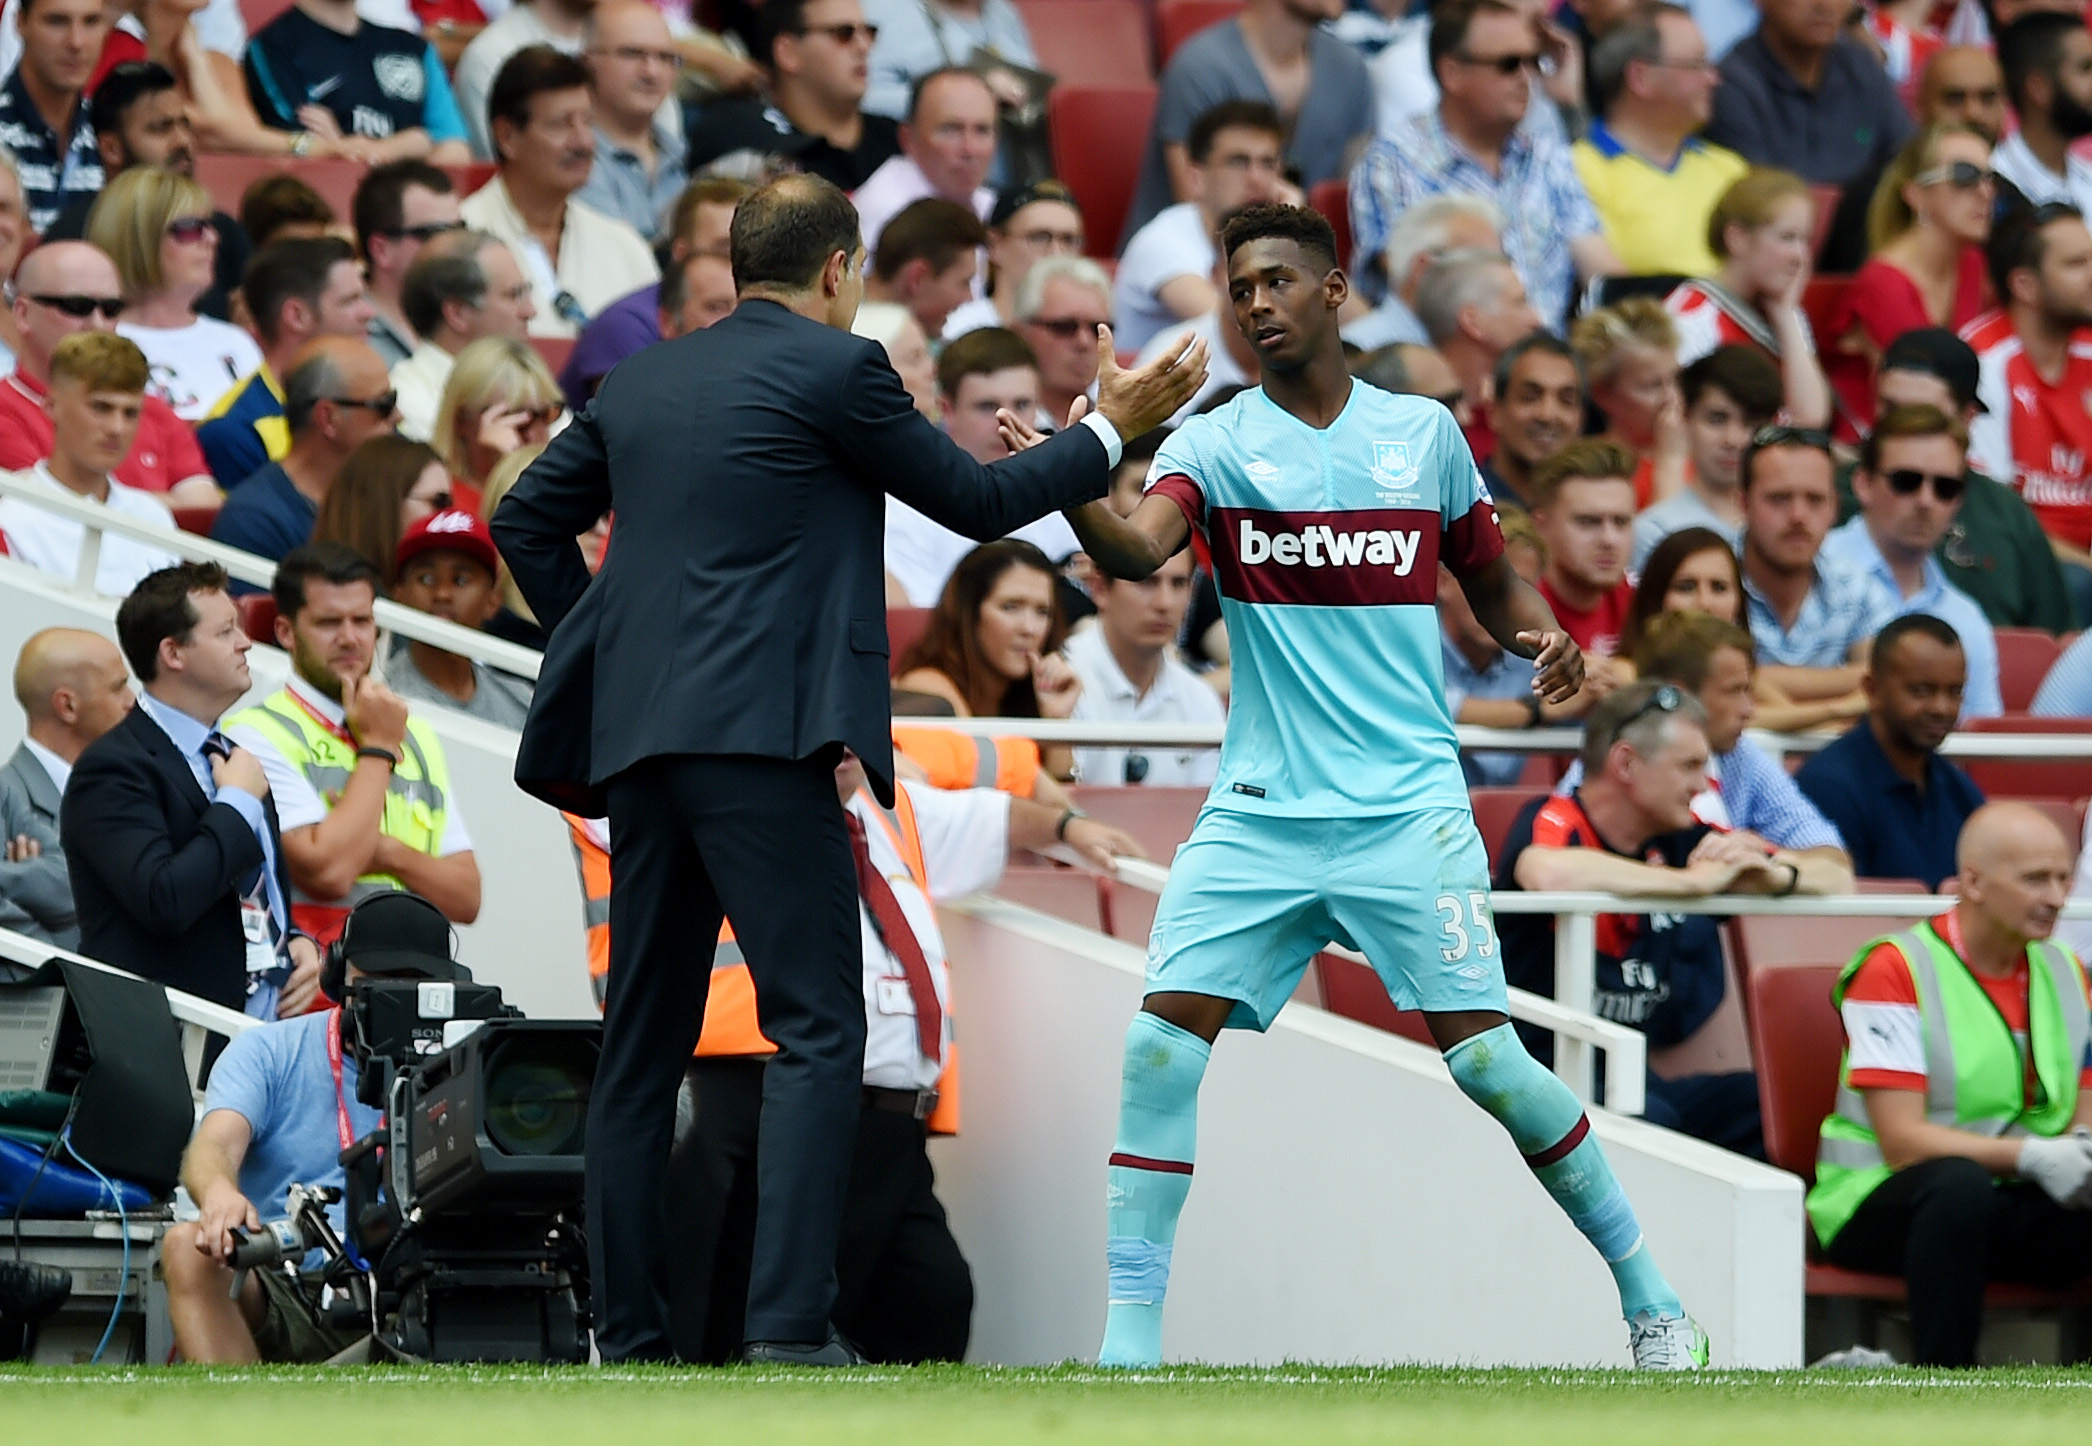 West Ham manager Slaven Bilic and Reece Oxford as he is substituted. Photo: Reuters